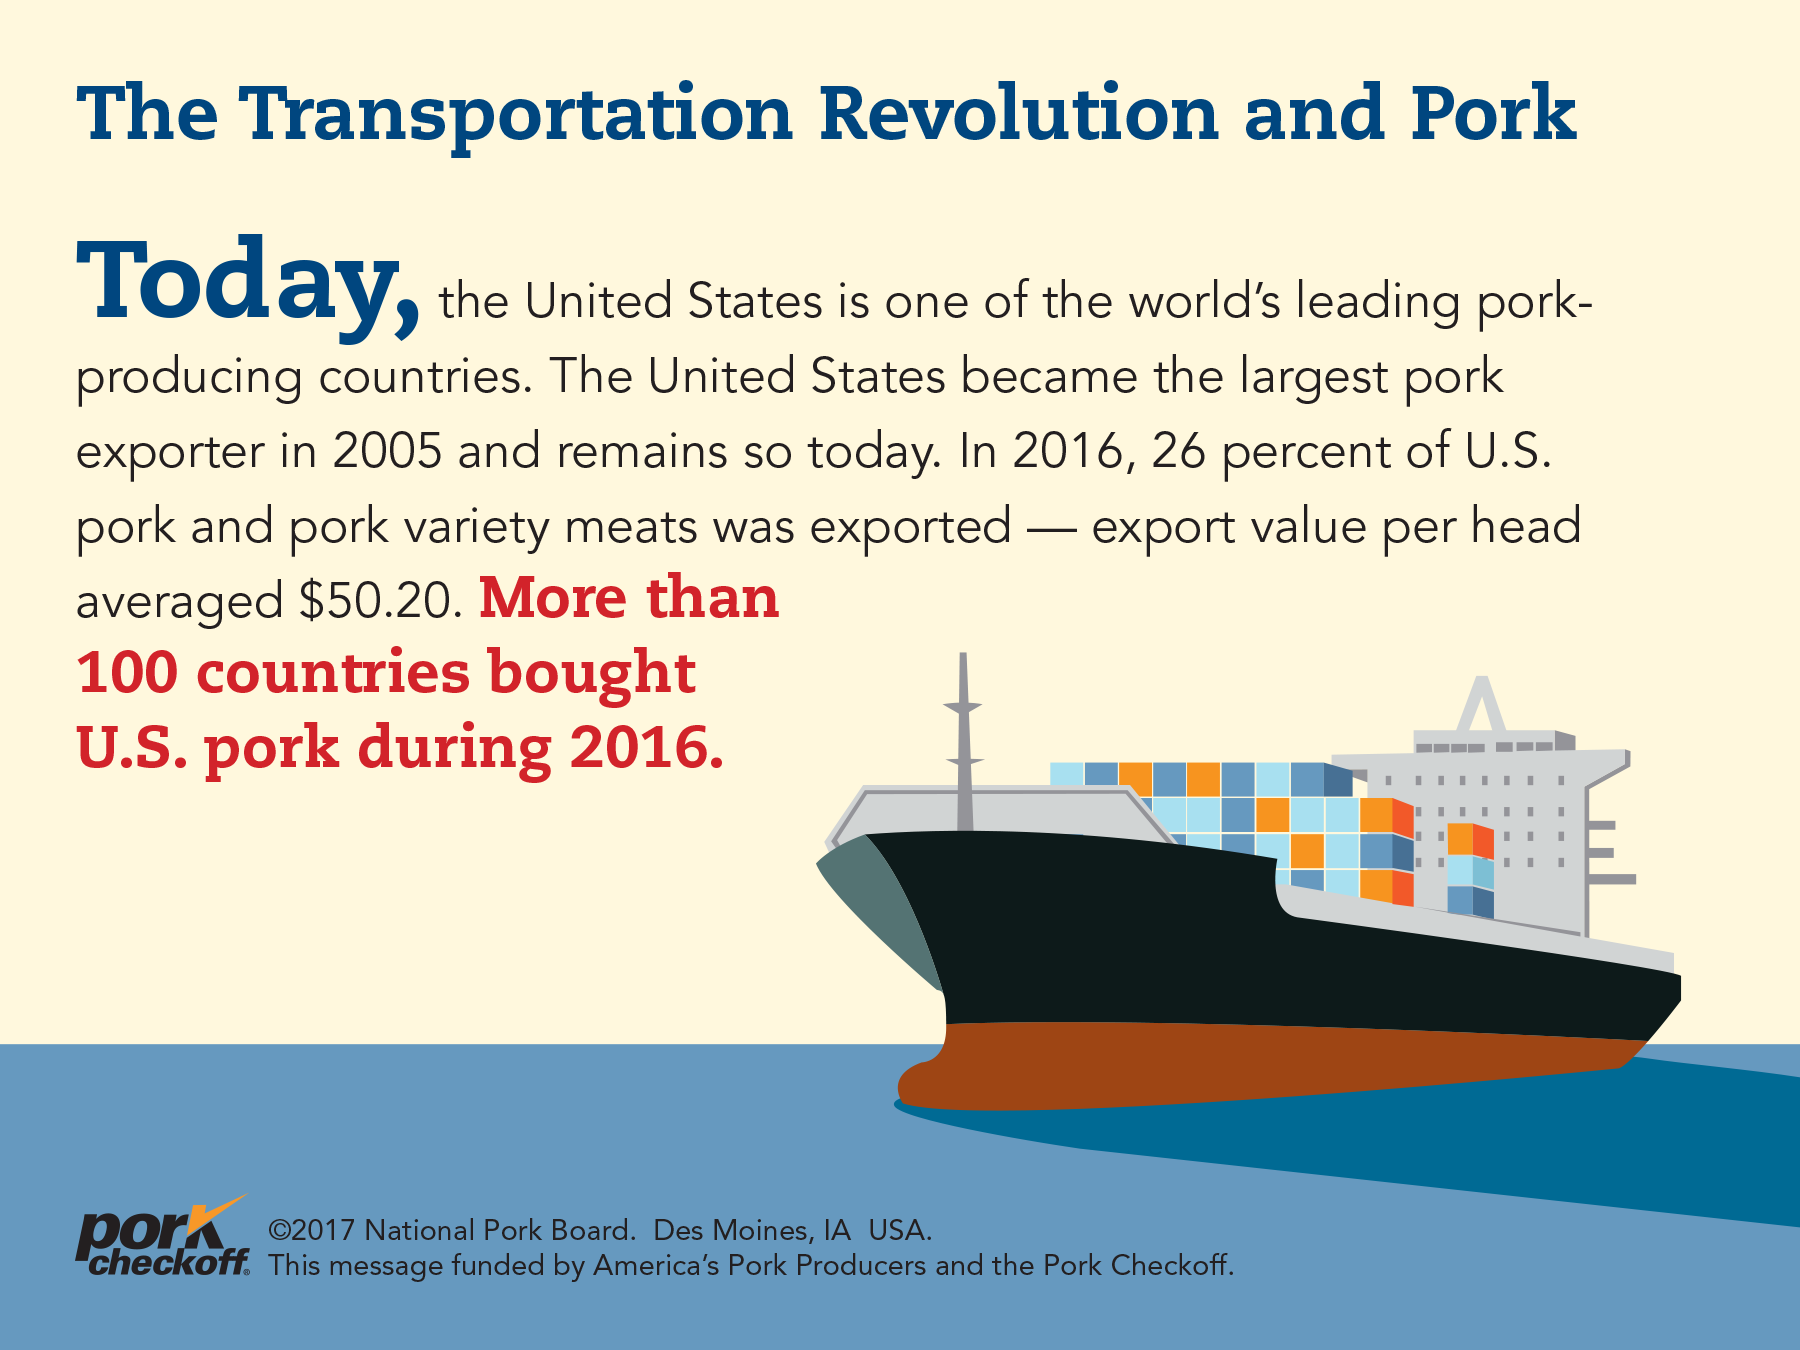 the transportation revolution and pork - total exports